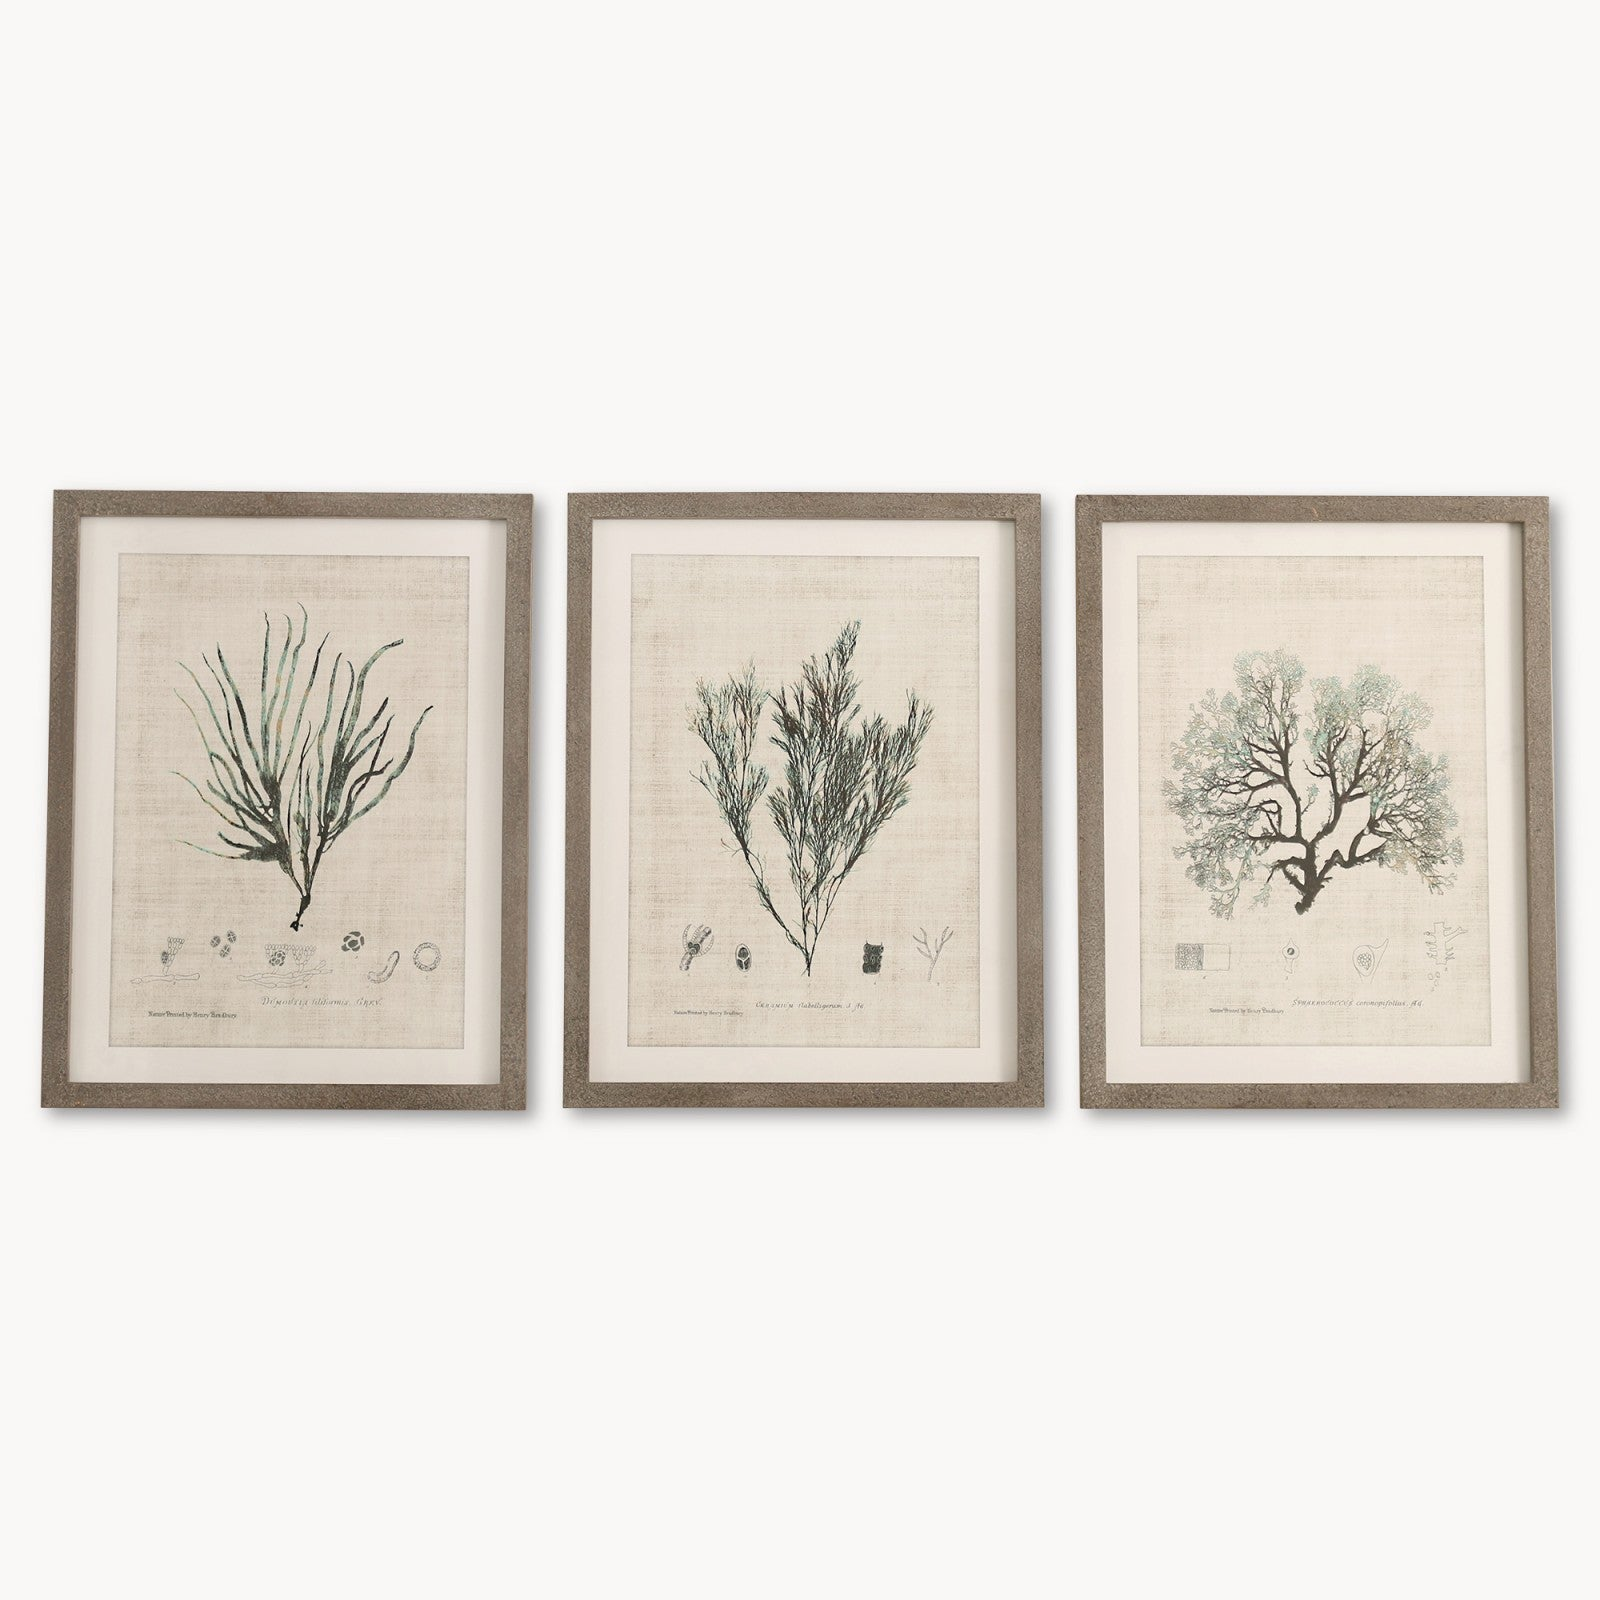 sc 1 st  Annie Mou0027s & Brockby Set of Three Wooden Framed Botanical Wall Art | Annie Mou0027s